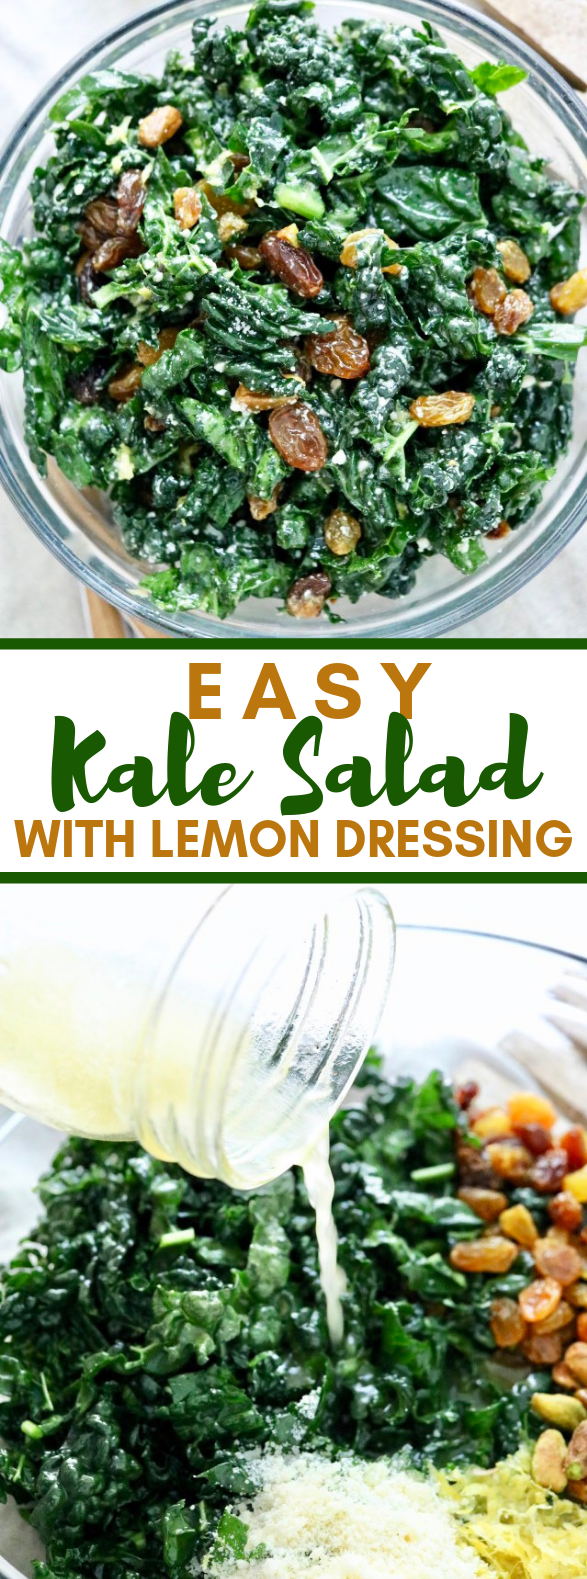 EASY KALE SALAD – WITH LEMON DRESSING #vegetarian #superfood